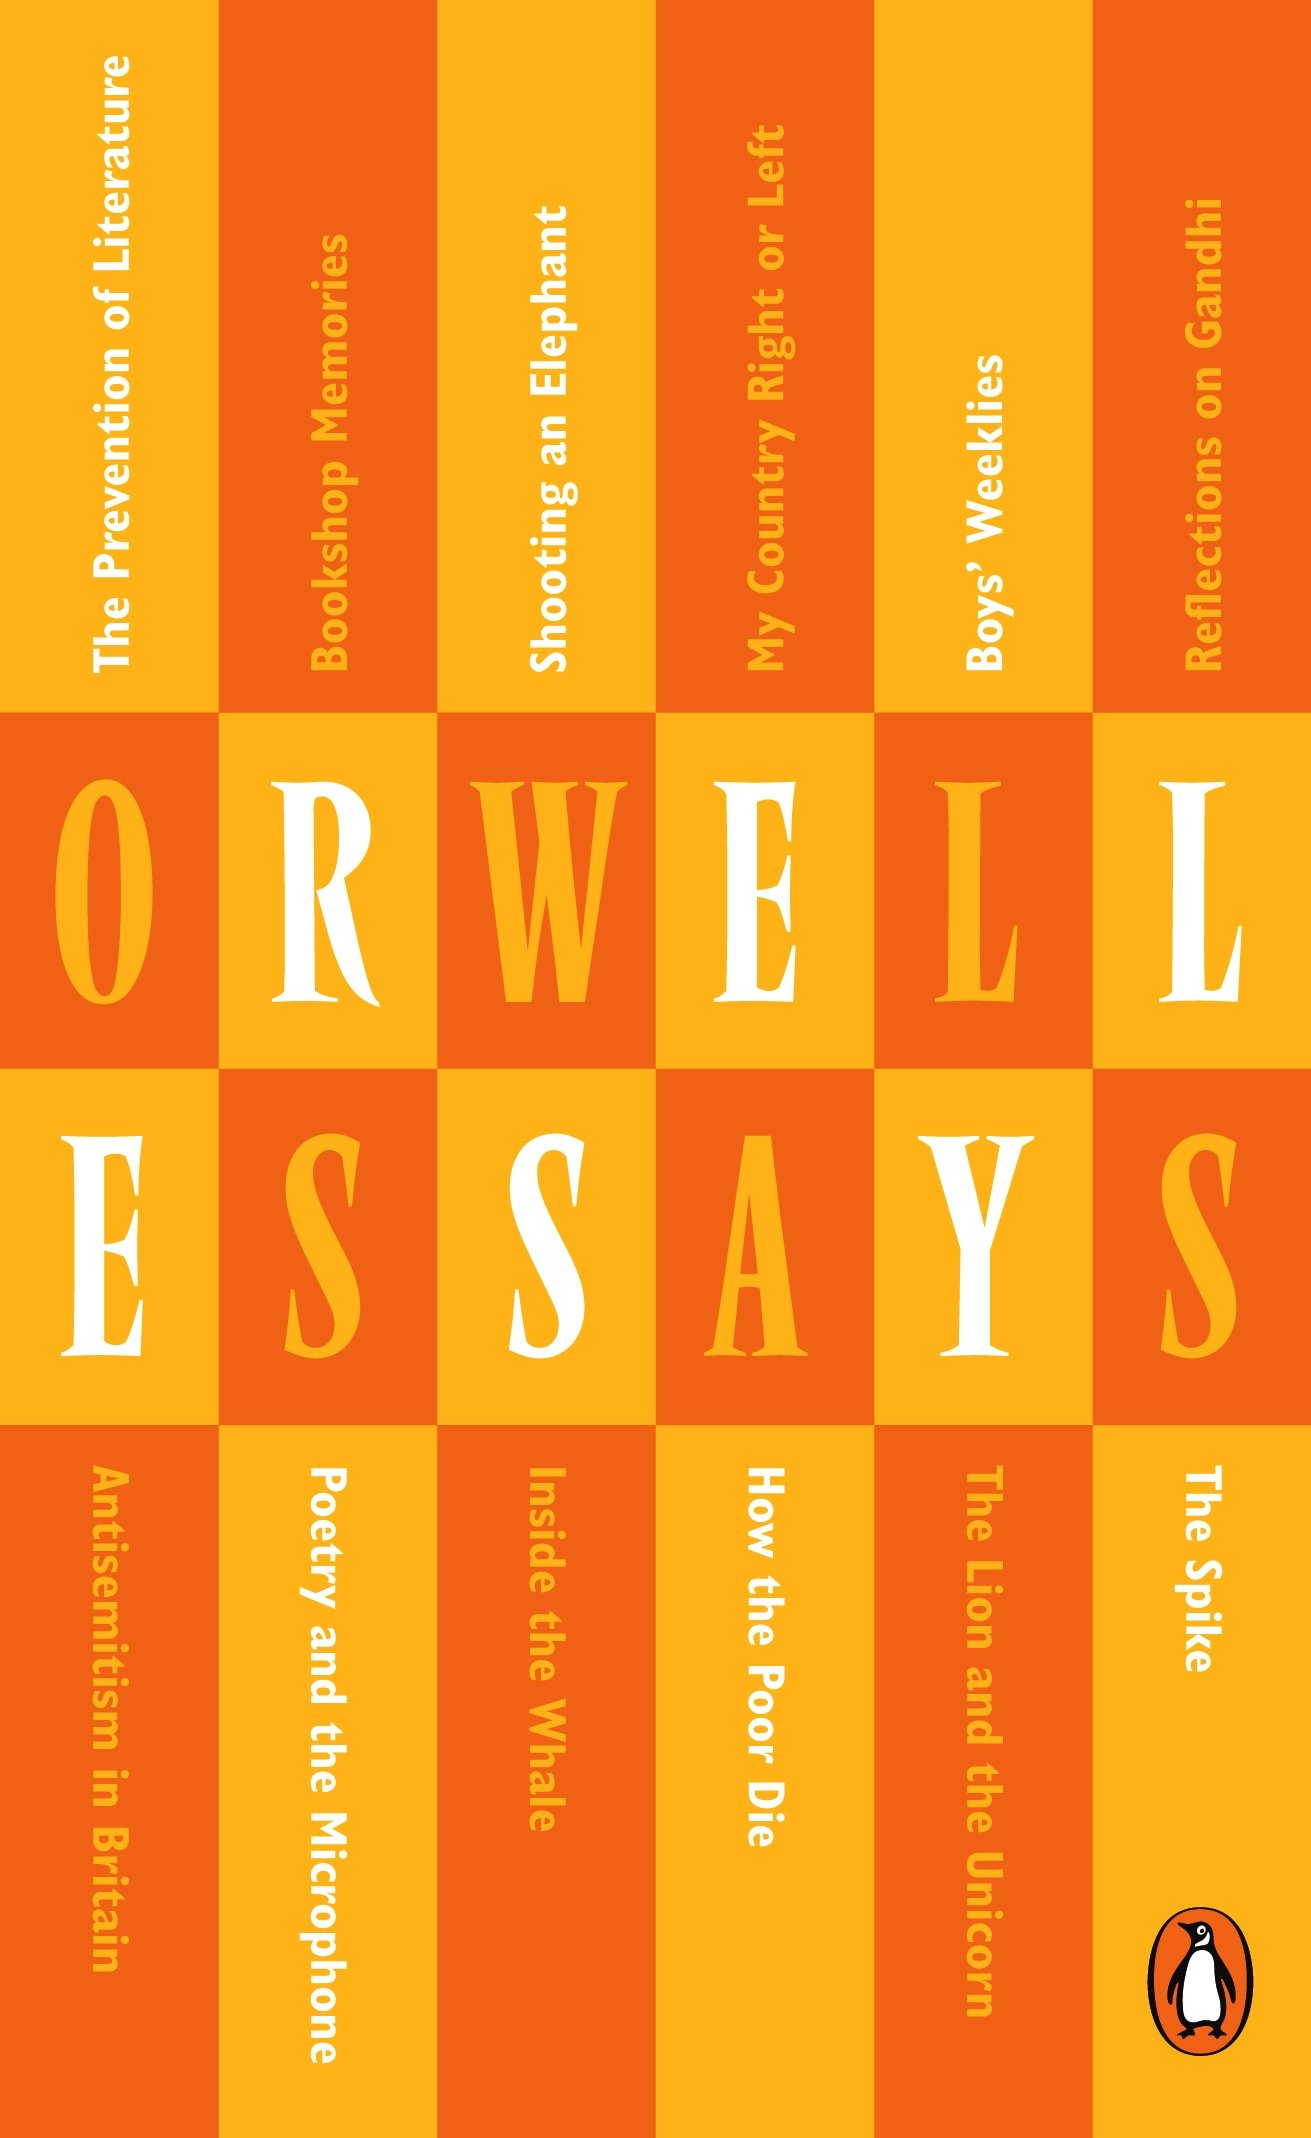 essays penguin modern classics co uk george orwell essays penguin modern classics co uk george orwell 9780141395463 books